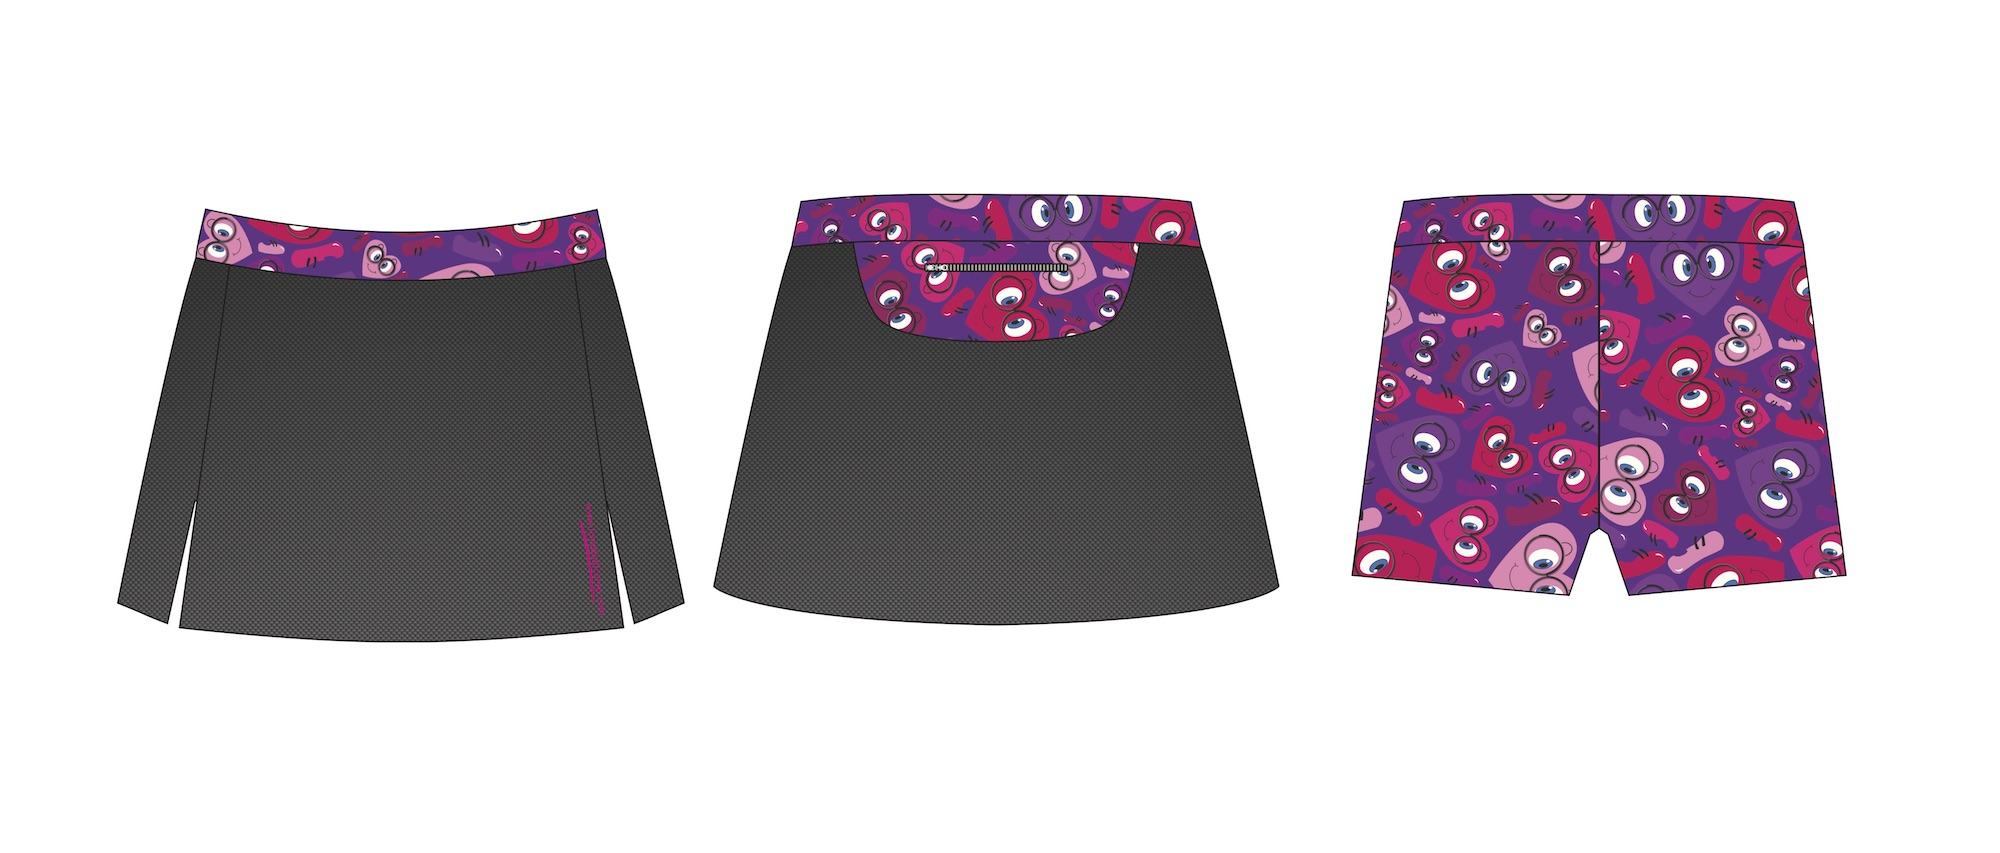 Cosmo Carbon Running Skirt